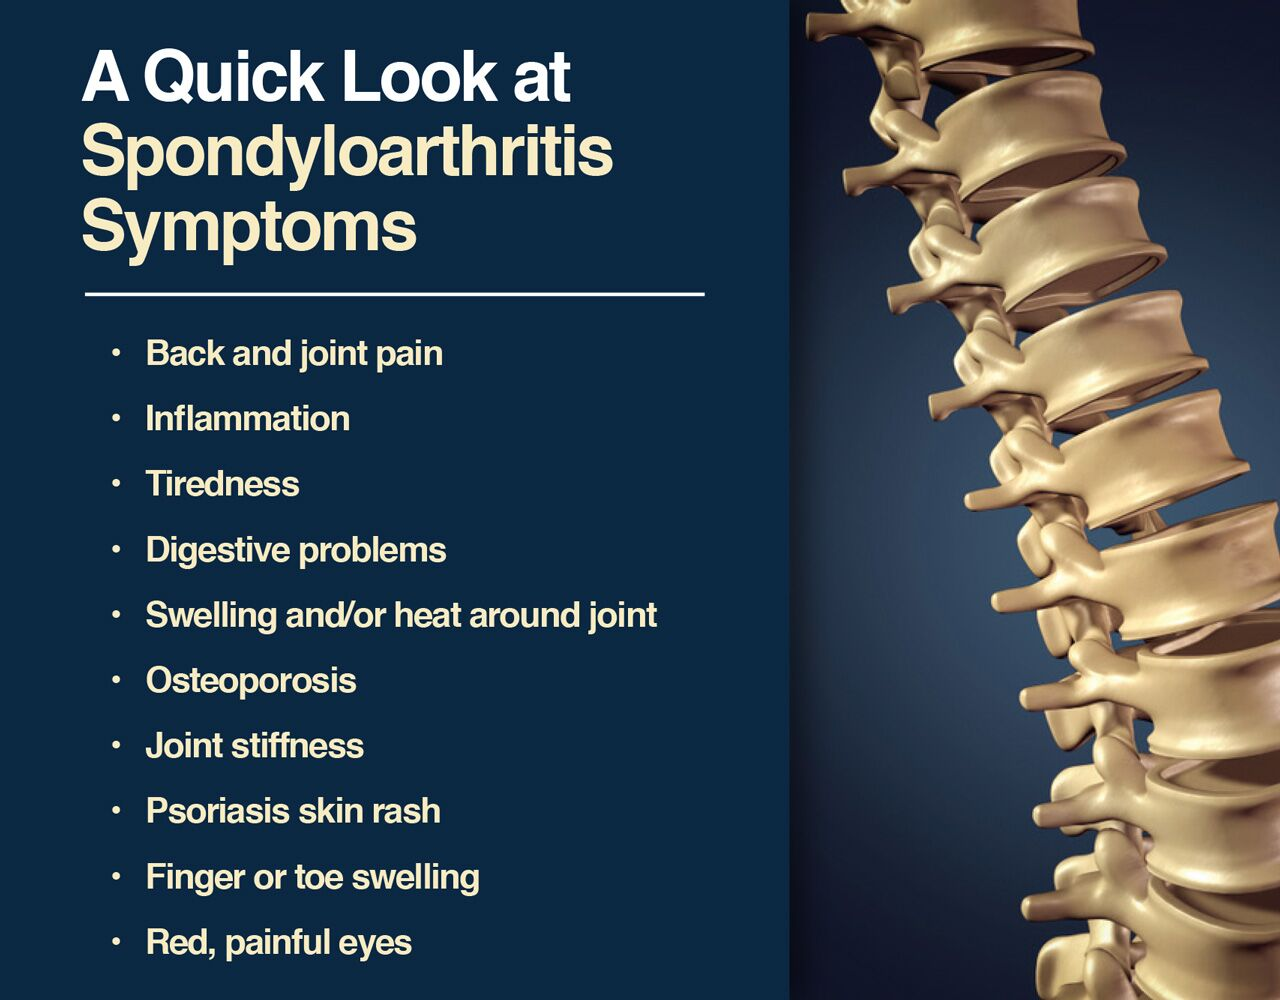 Spondyloarthritis symptoms